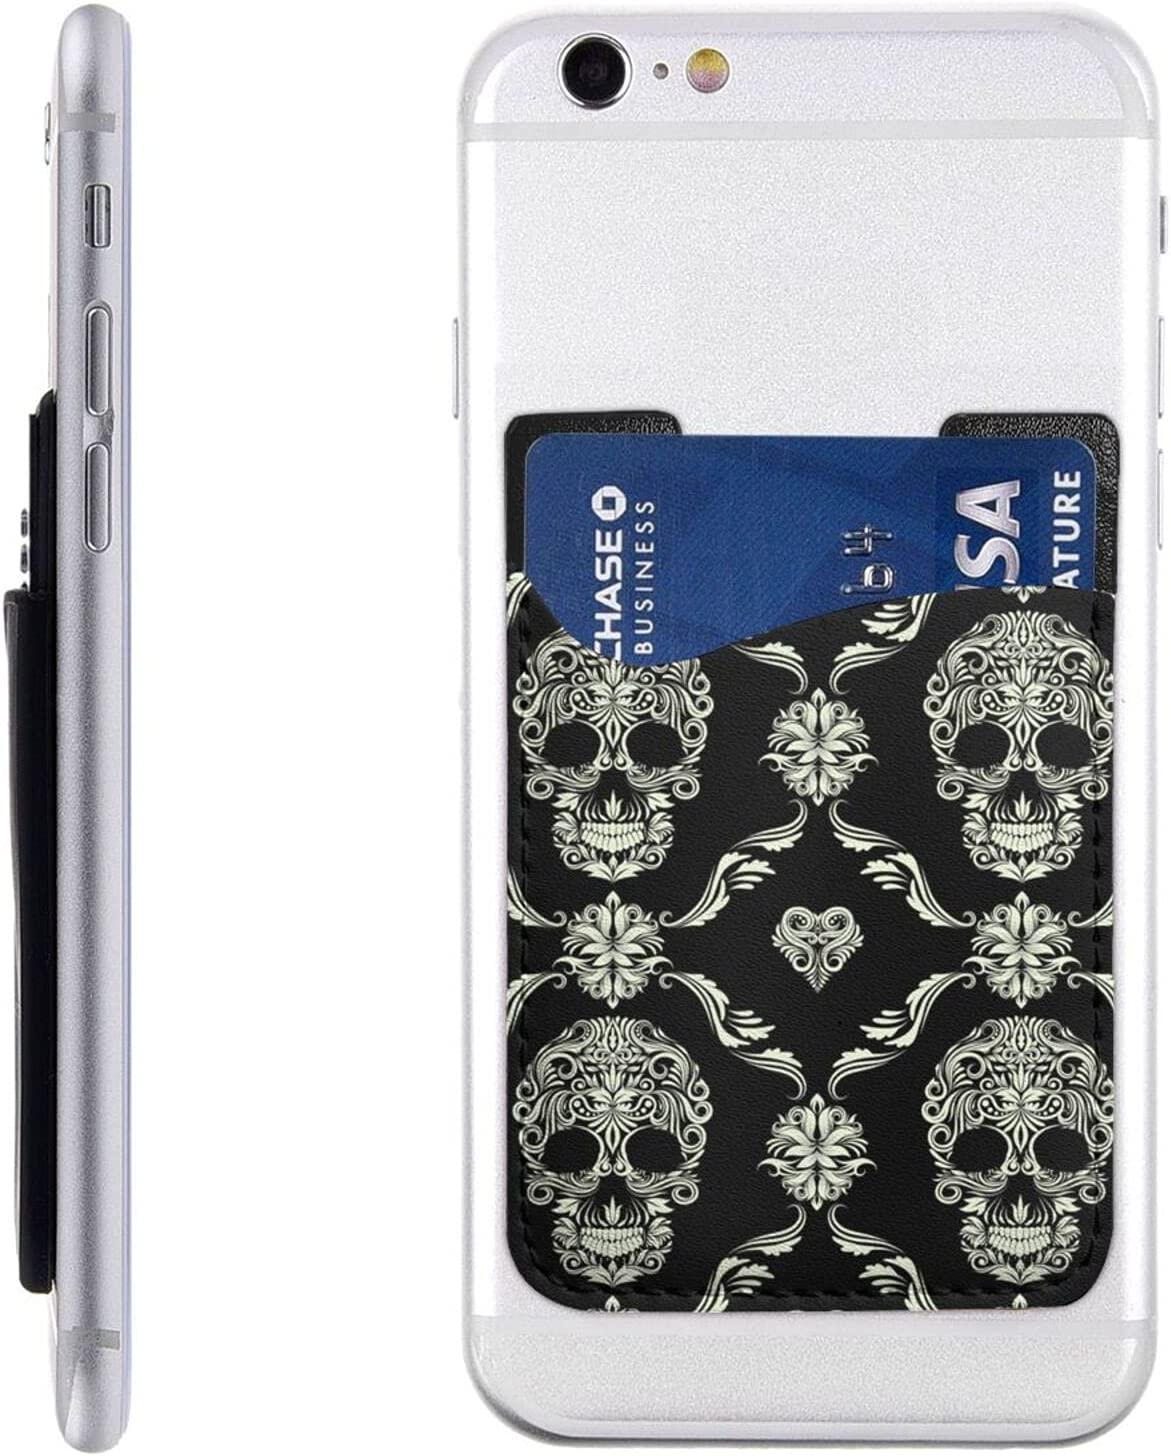 Flowers Skull Ornamental Pattern Phone Raleigh Mall Cell Card St Seasonal Wrap Introduction Holder